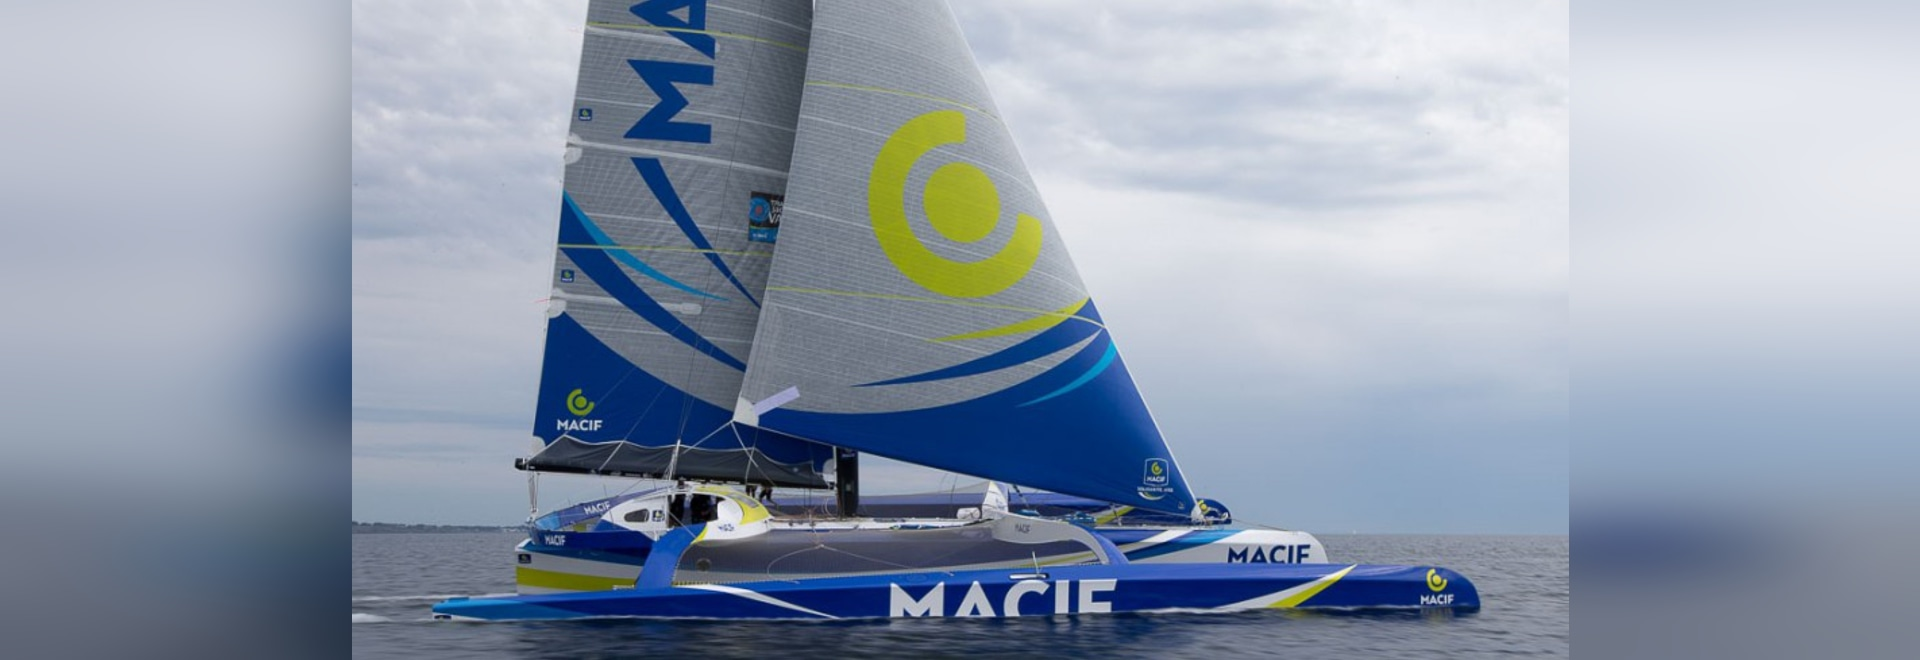 New solo 24hr record of 771 miles set by François Gabart in trimaran MACIF